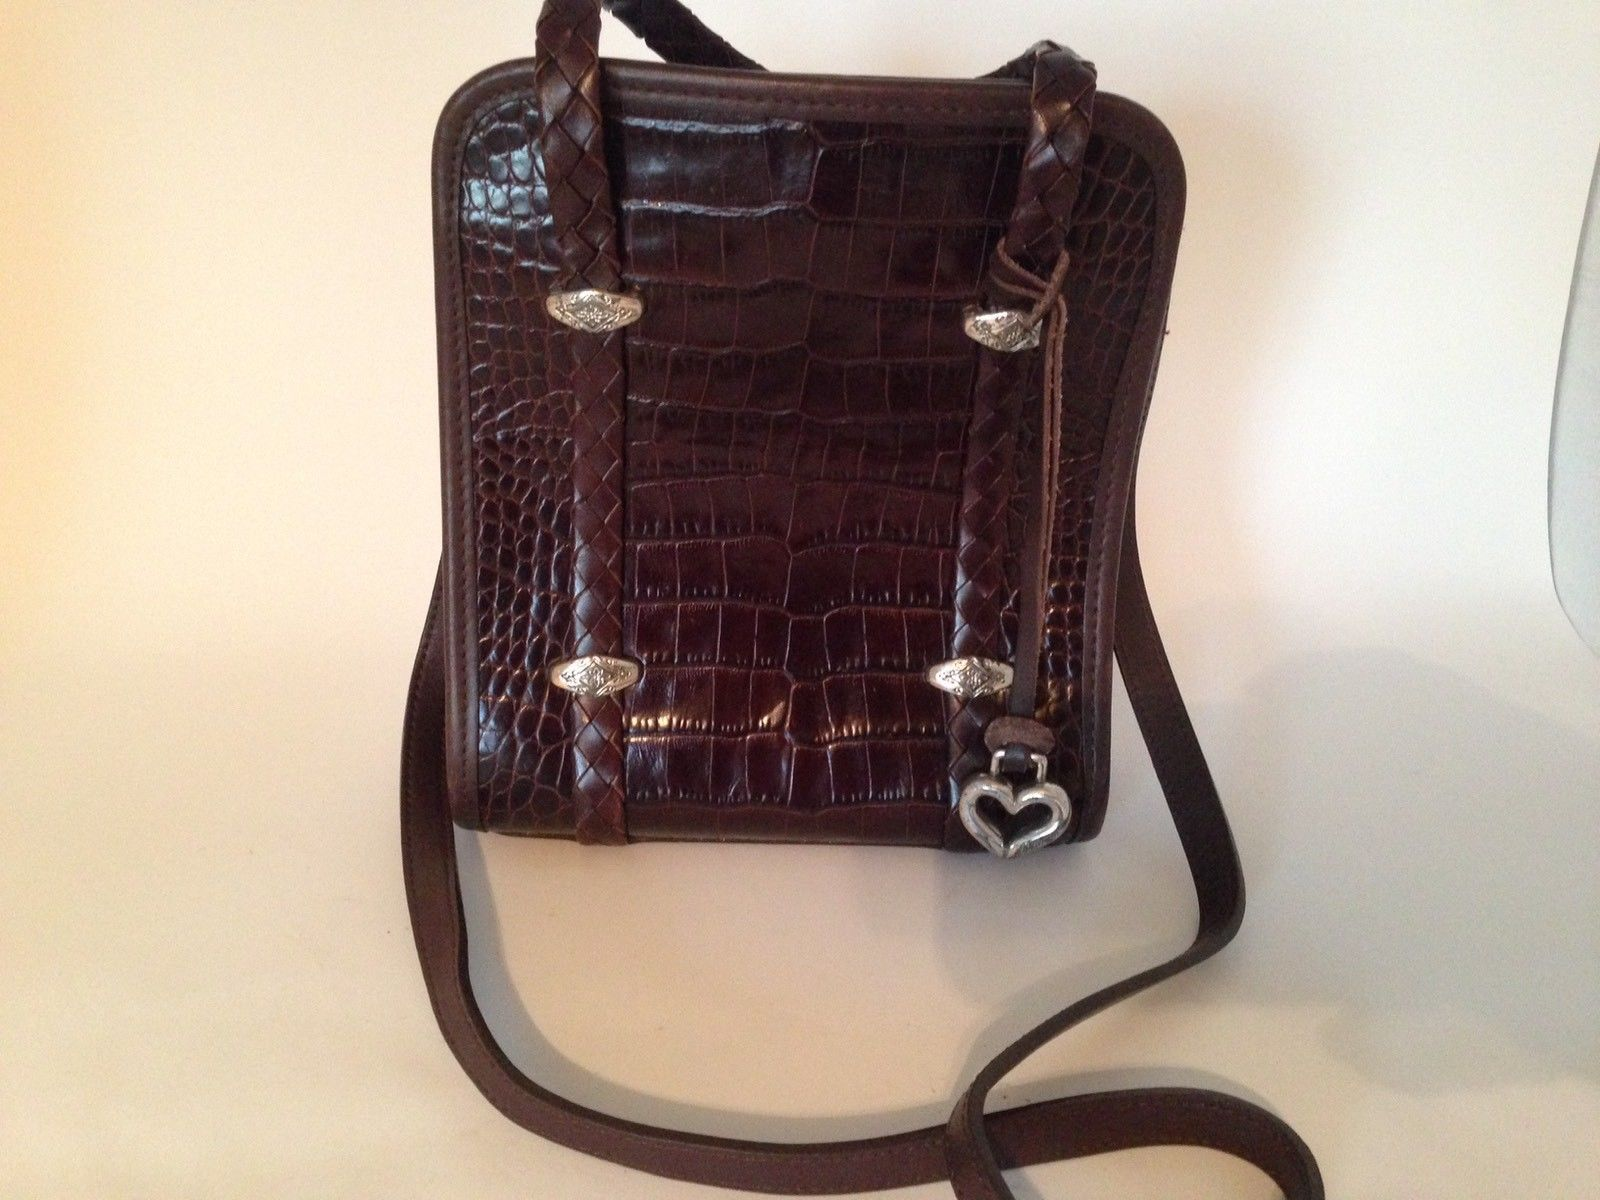 Brighton Brown Crocodile Embossed Leather Bag Detachable Shoulder Strap Purse